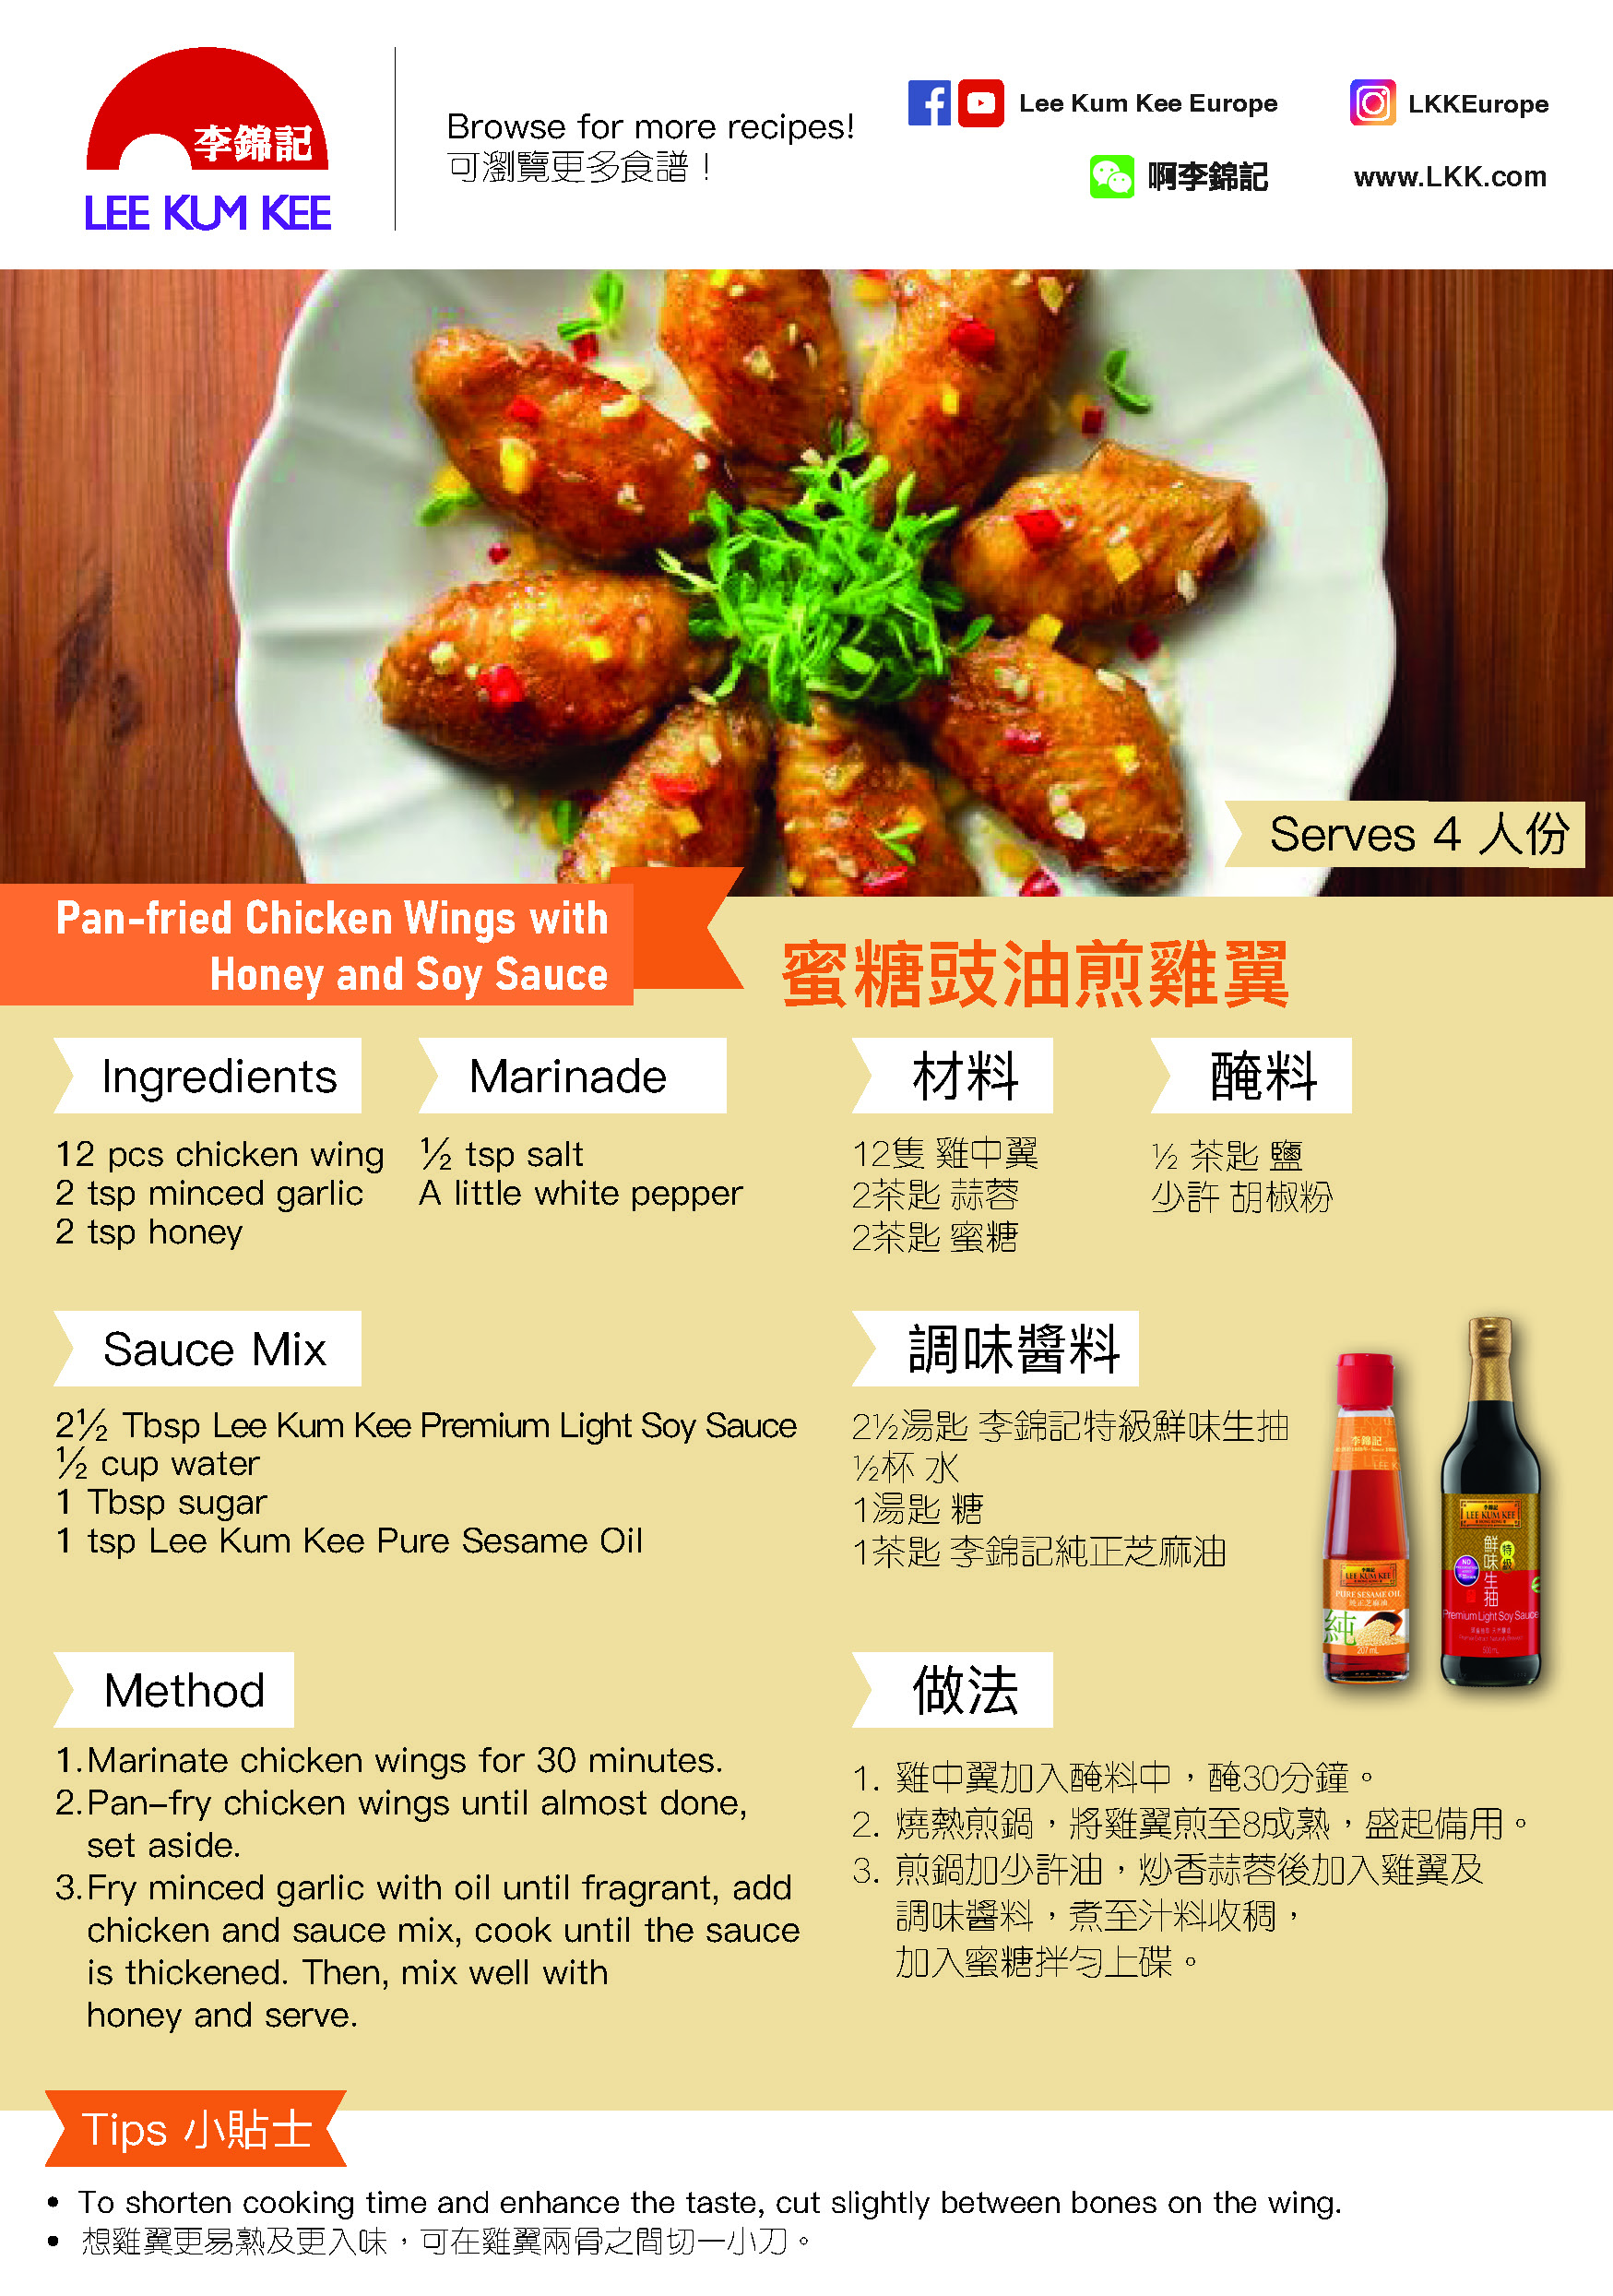 Perfect and flavourful chicken wing recipe from LKK!